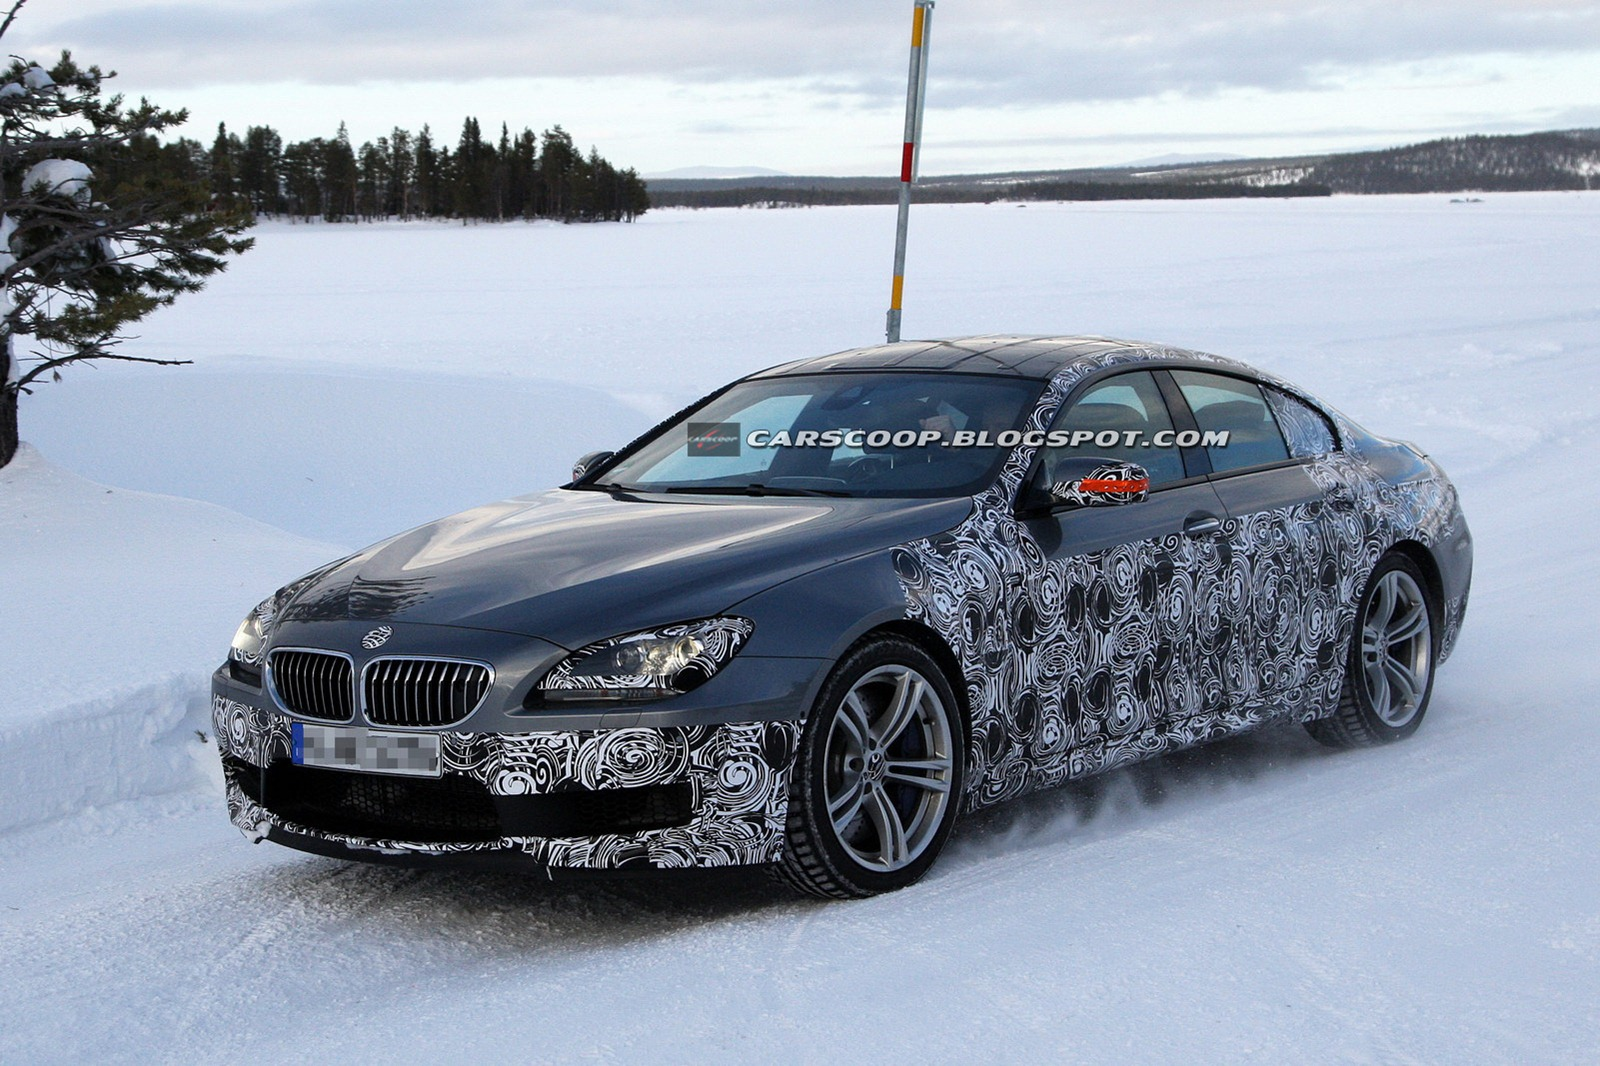 2013-BMW-M6-Gran-Coupe